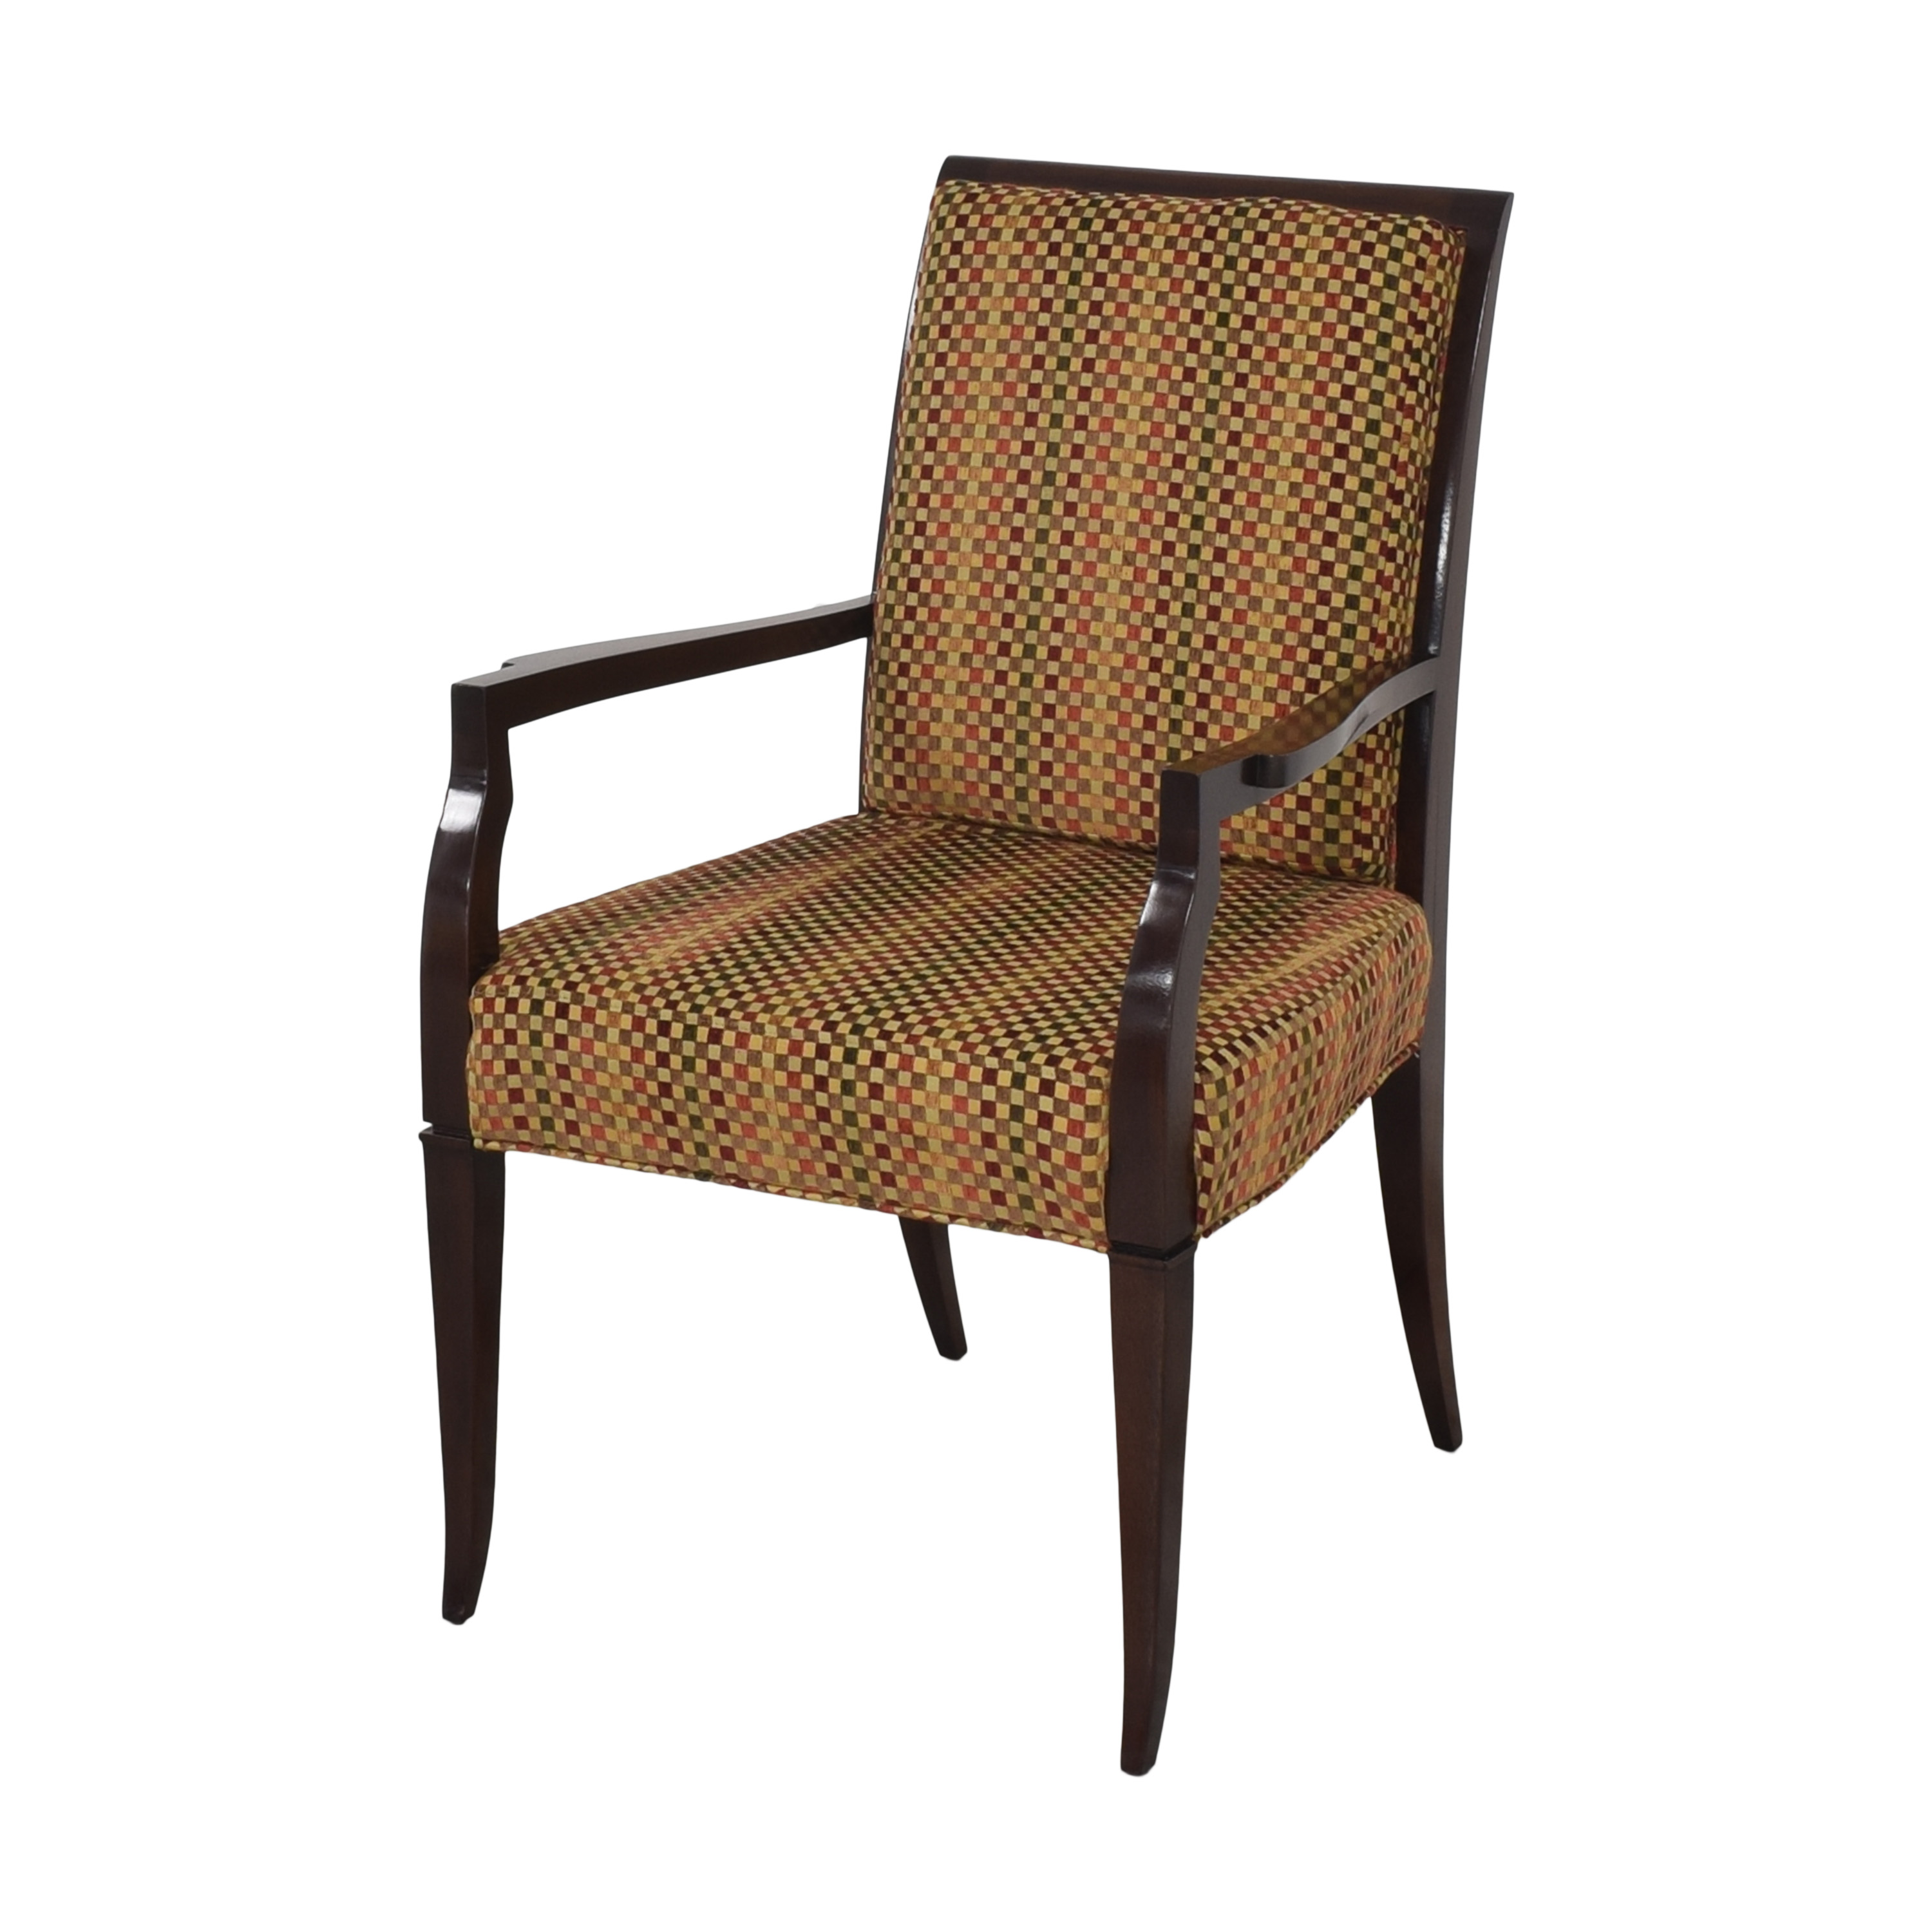 Councill Council Upholstered Chair Chairs